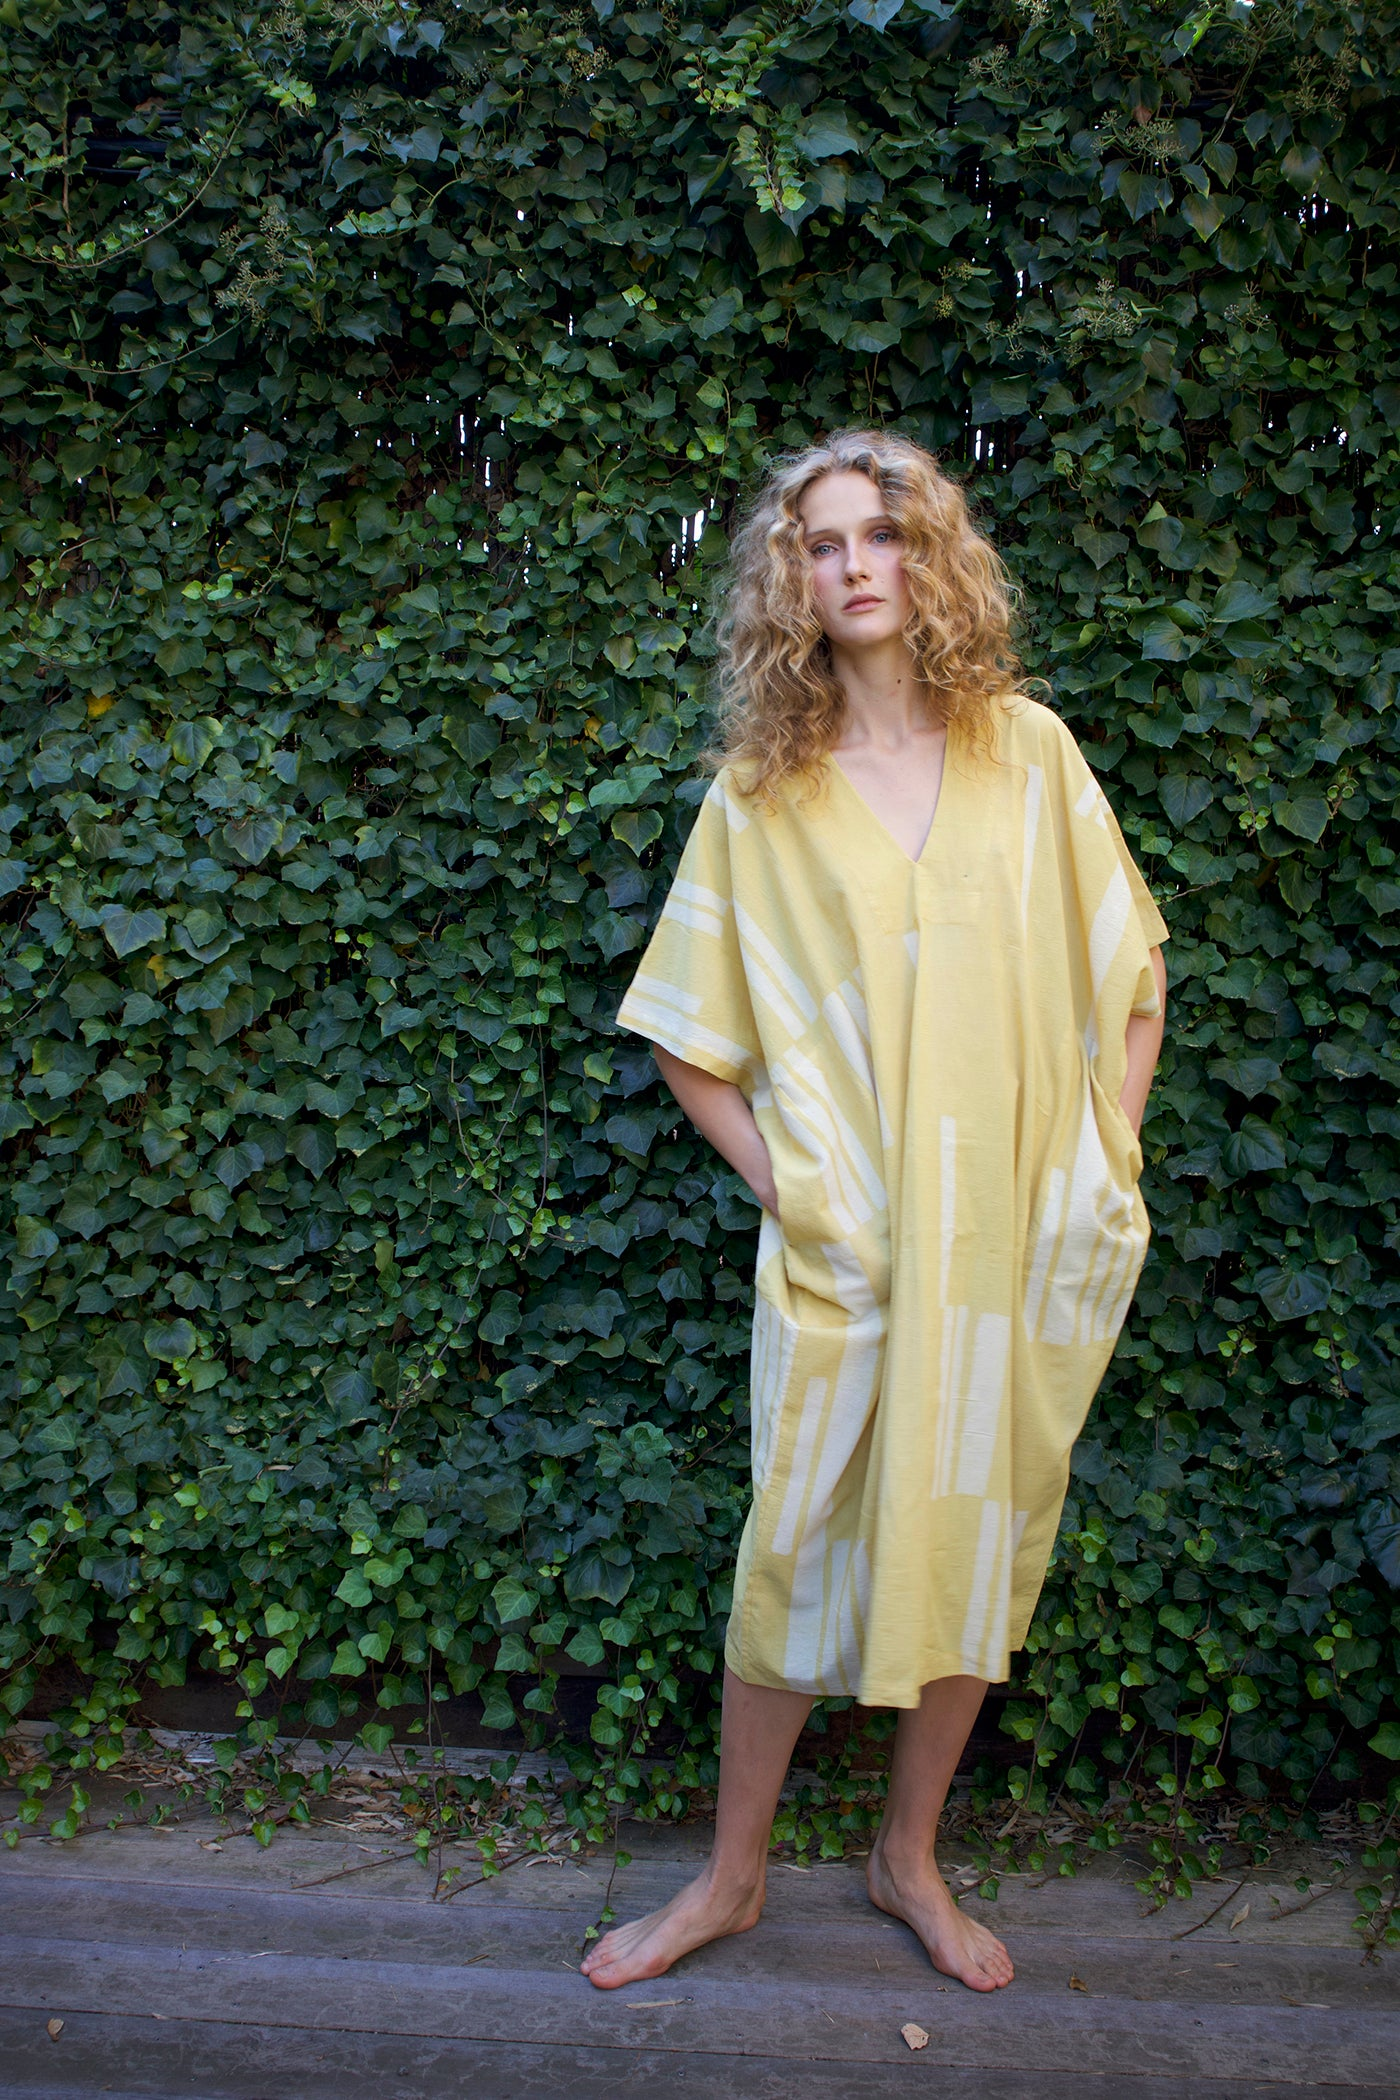 Woman in yellow and white Caftan, Kaftan, Leisurewear, Genderless fashion, Sustainable fashion, Summer dress, Resortwear